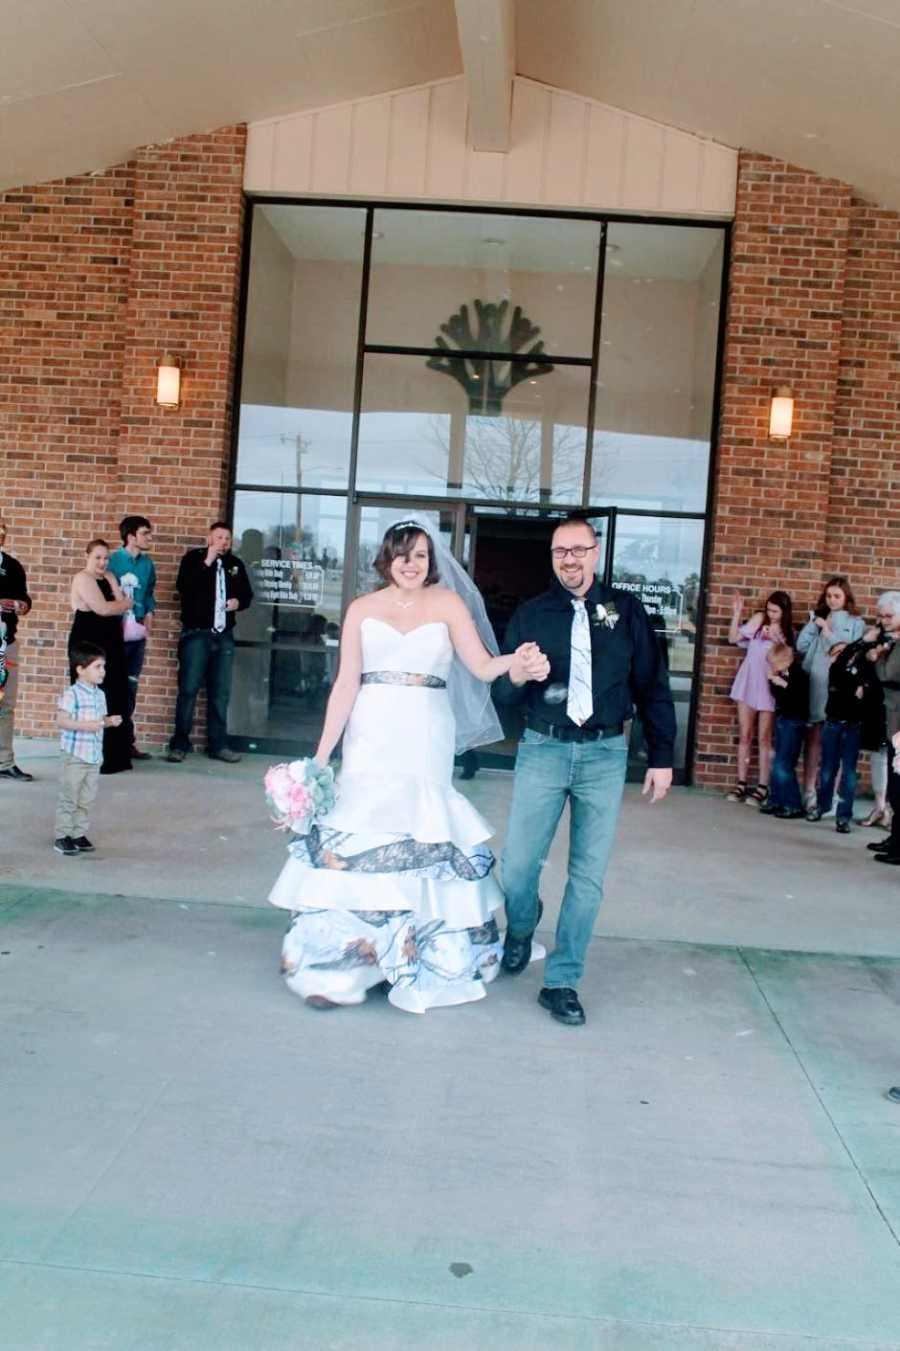 Newly weds walk out of their wedding reception hand-in-hand with big smiles